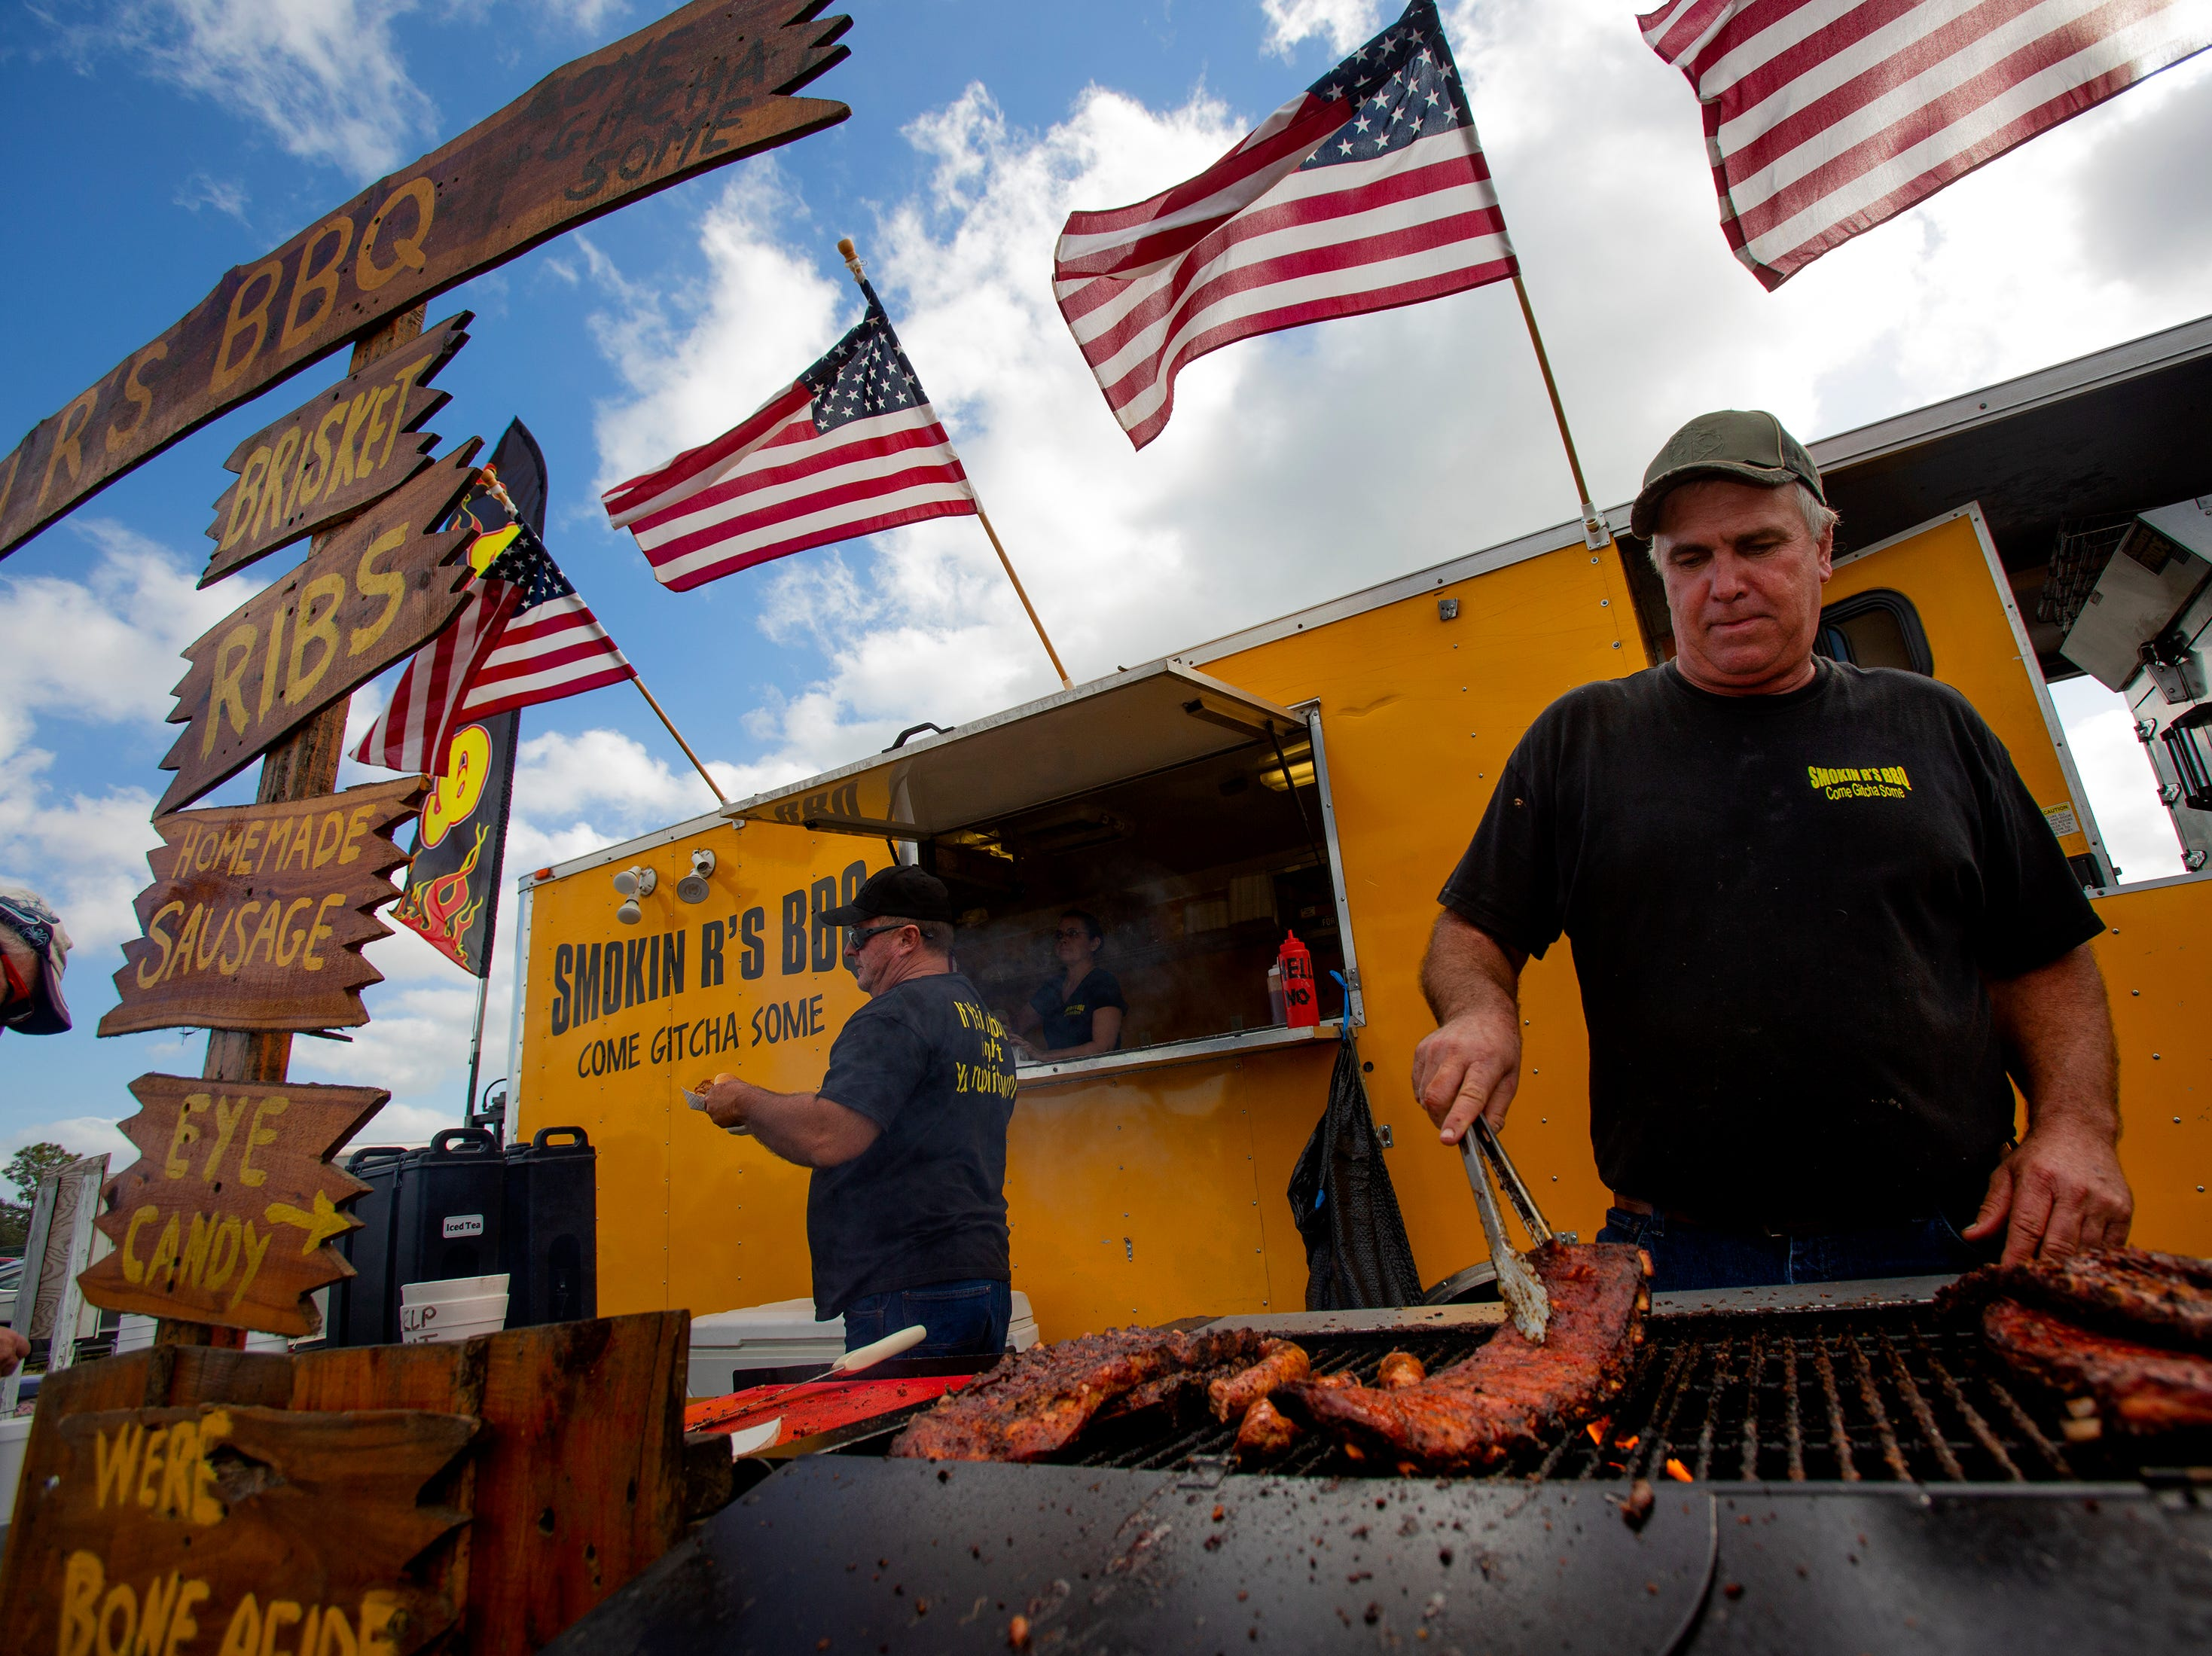 Robert Rivers, owner of Smokin R's BBQ, prepares racks of ribs during the 7th Annual Big Swamp Smoke Off & Craft Beer Festival on Saturday, Jan. 5, 2019, at the Collier County Fairgrounds.